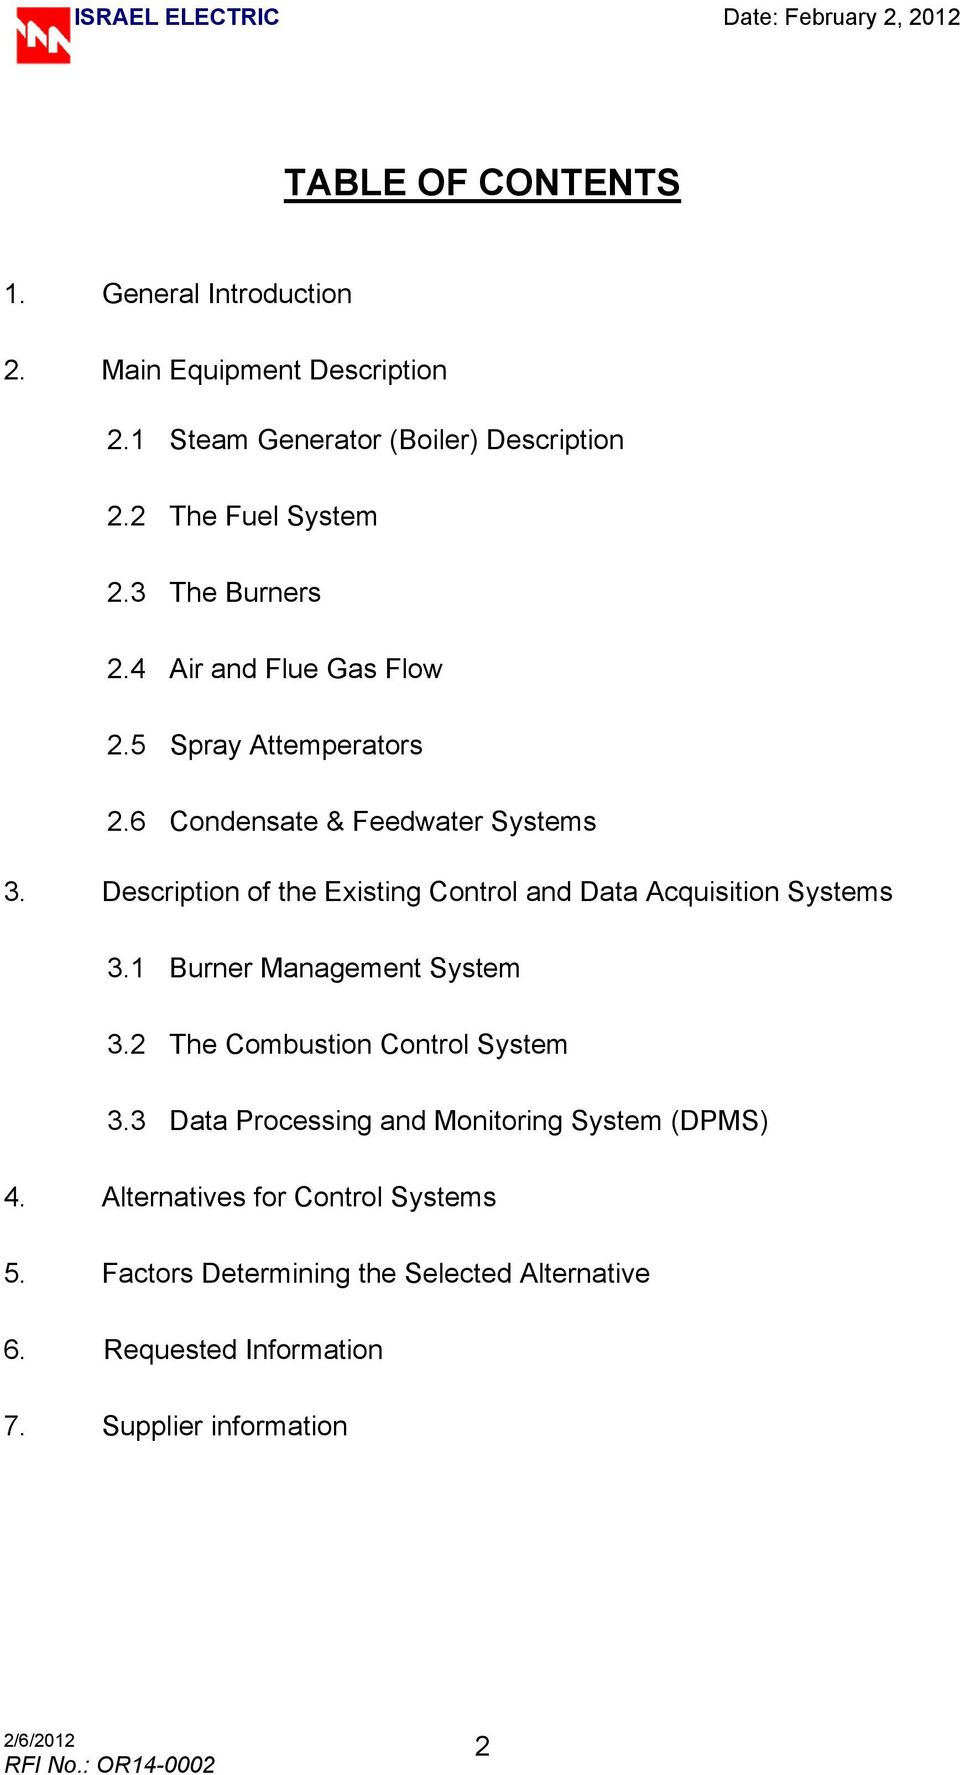 Description of the Existing Control and Data Acquisition Systems 3.1 Burner Management System 3.2 The Combustion Control System 3.